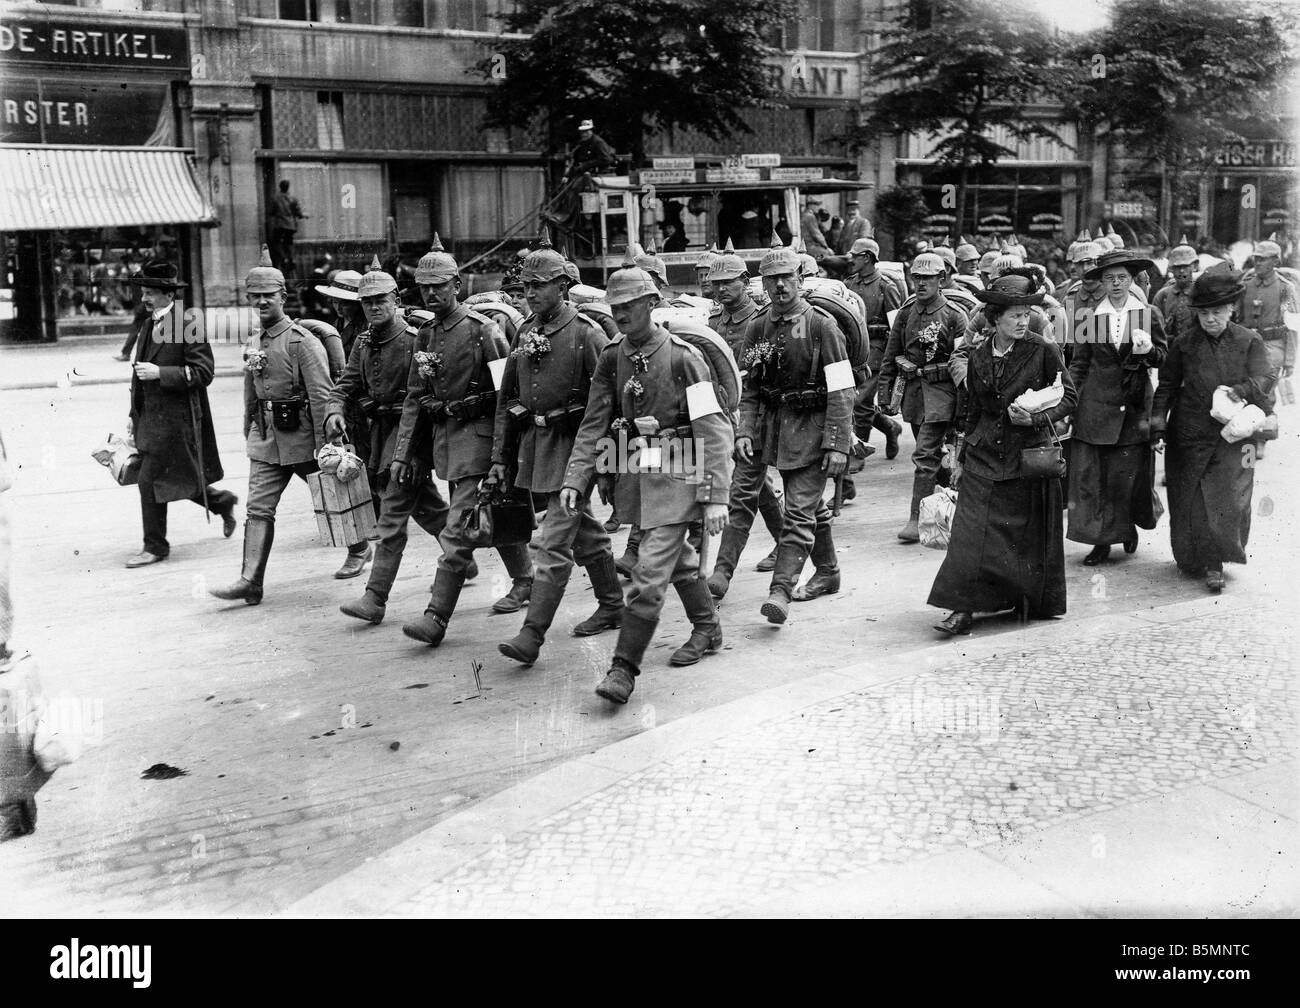 8 1914 0 0 A1 Soldiers with families Berlin 1914 World War I 1914 1918 Berlin Soldiers on their way to the station - Stock Image